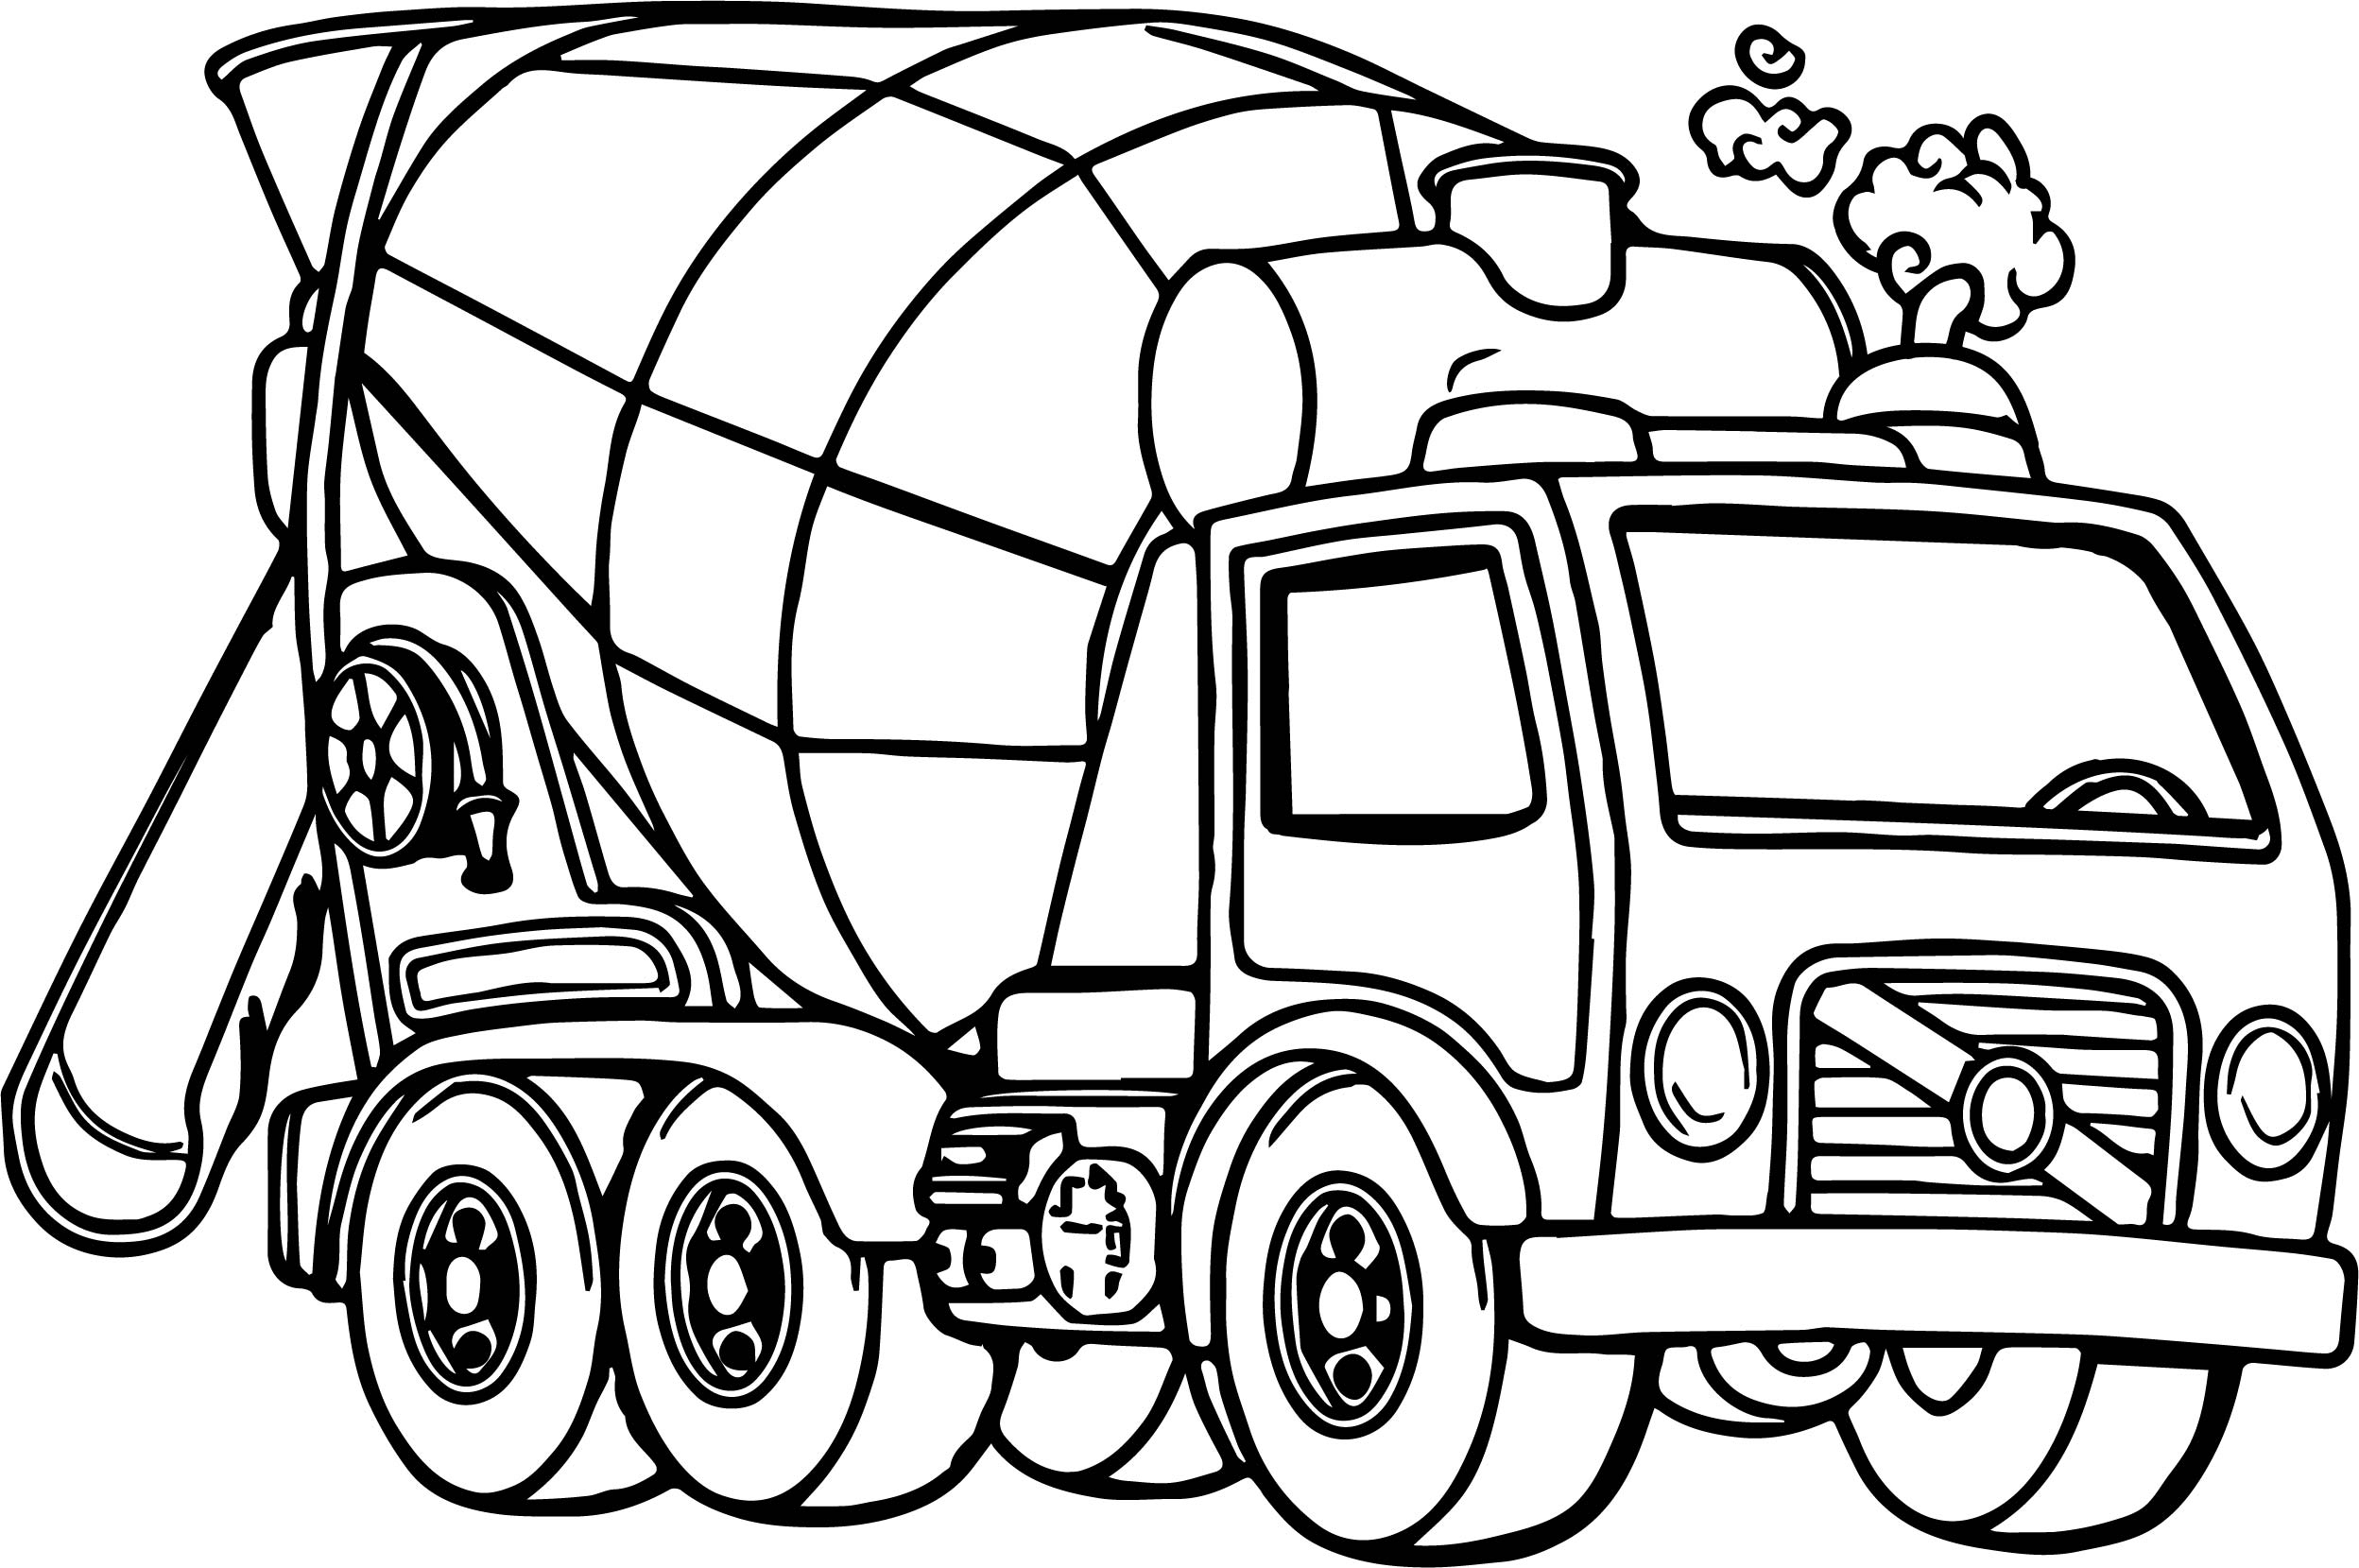 Truck Coloring Pages For Adults At Getdrawings